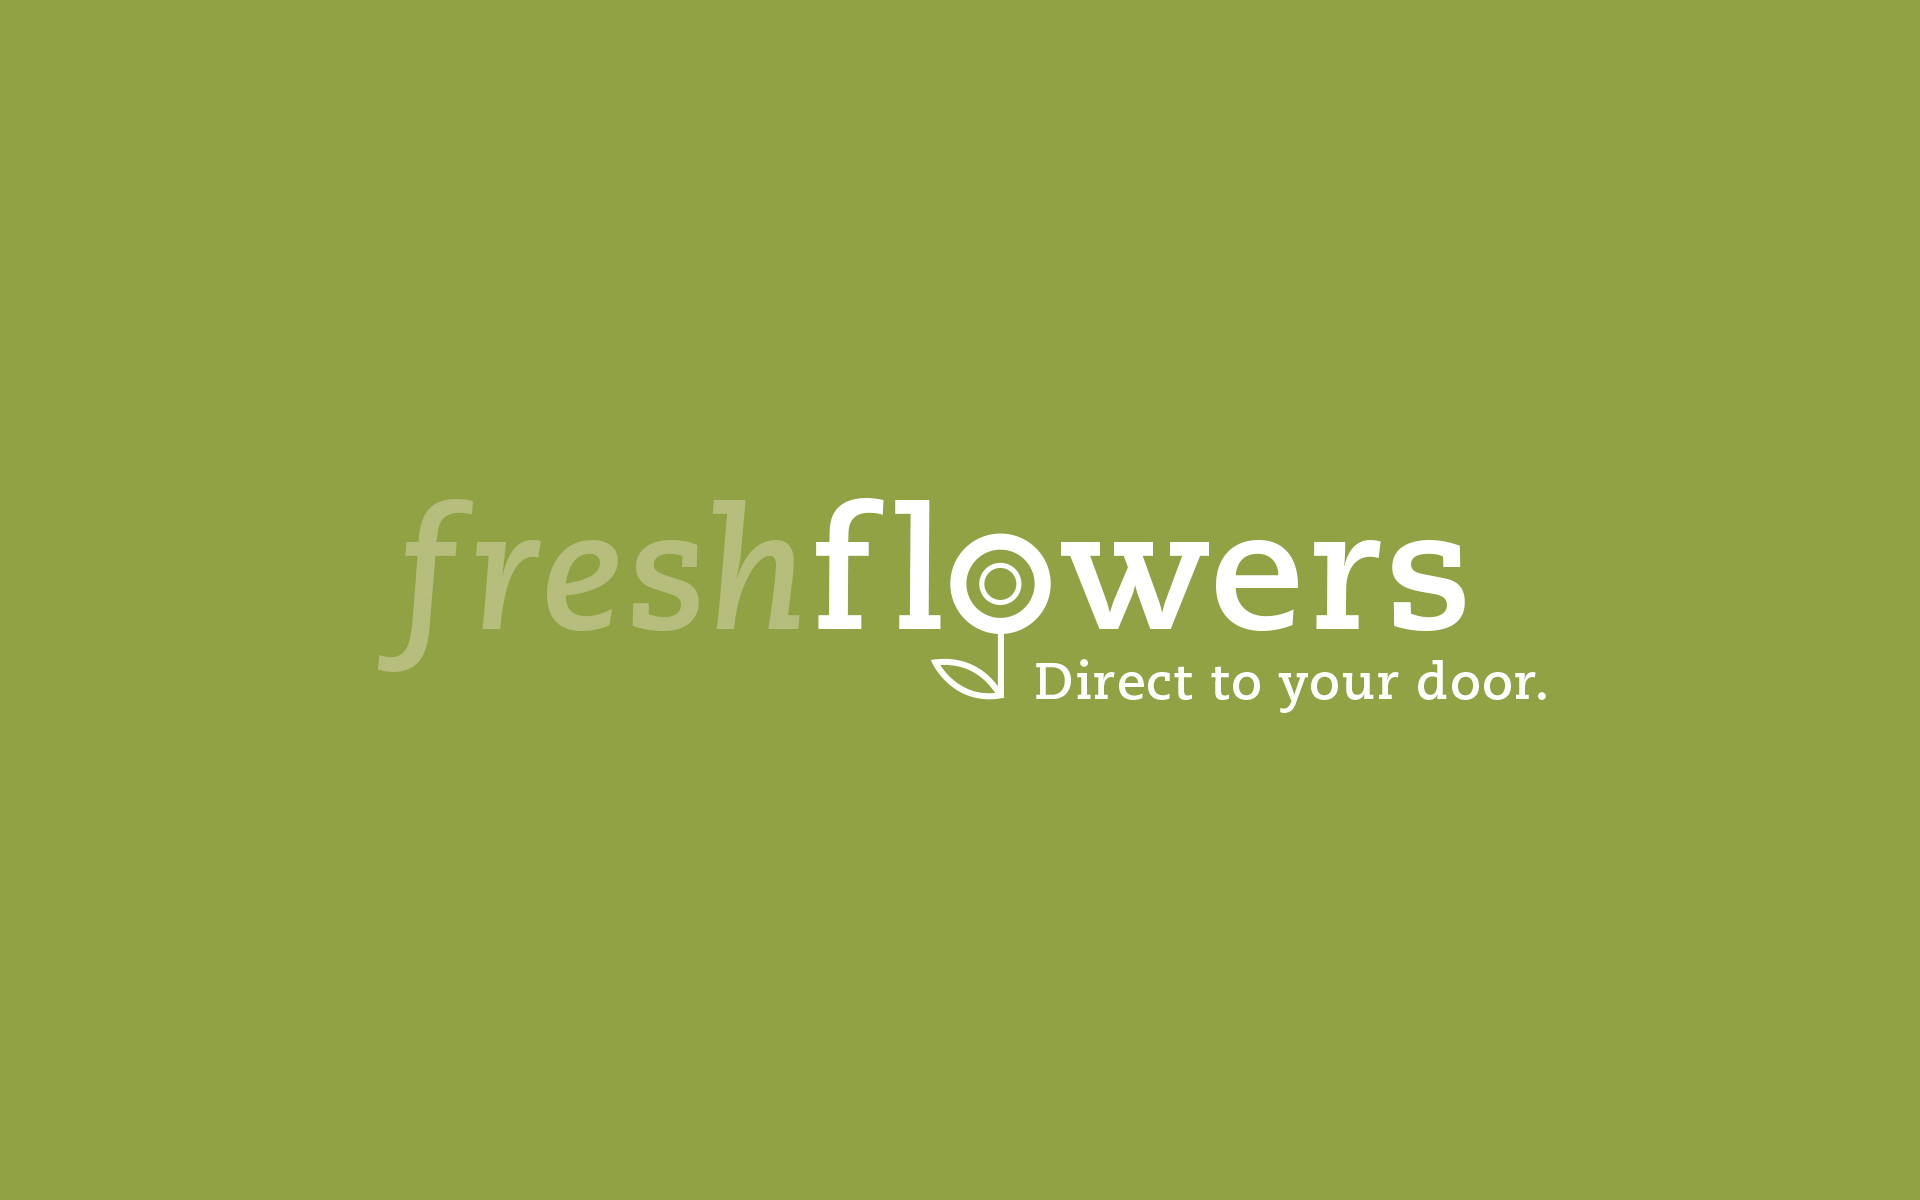 Print_Fresh-Flowers_Green-Logo copy 2